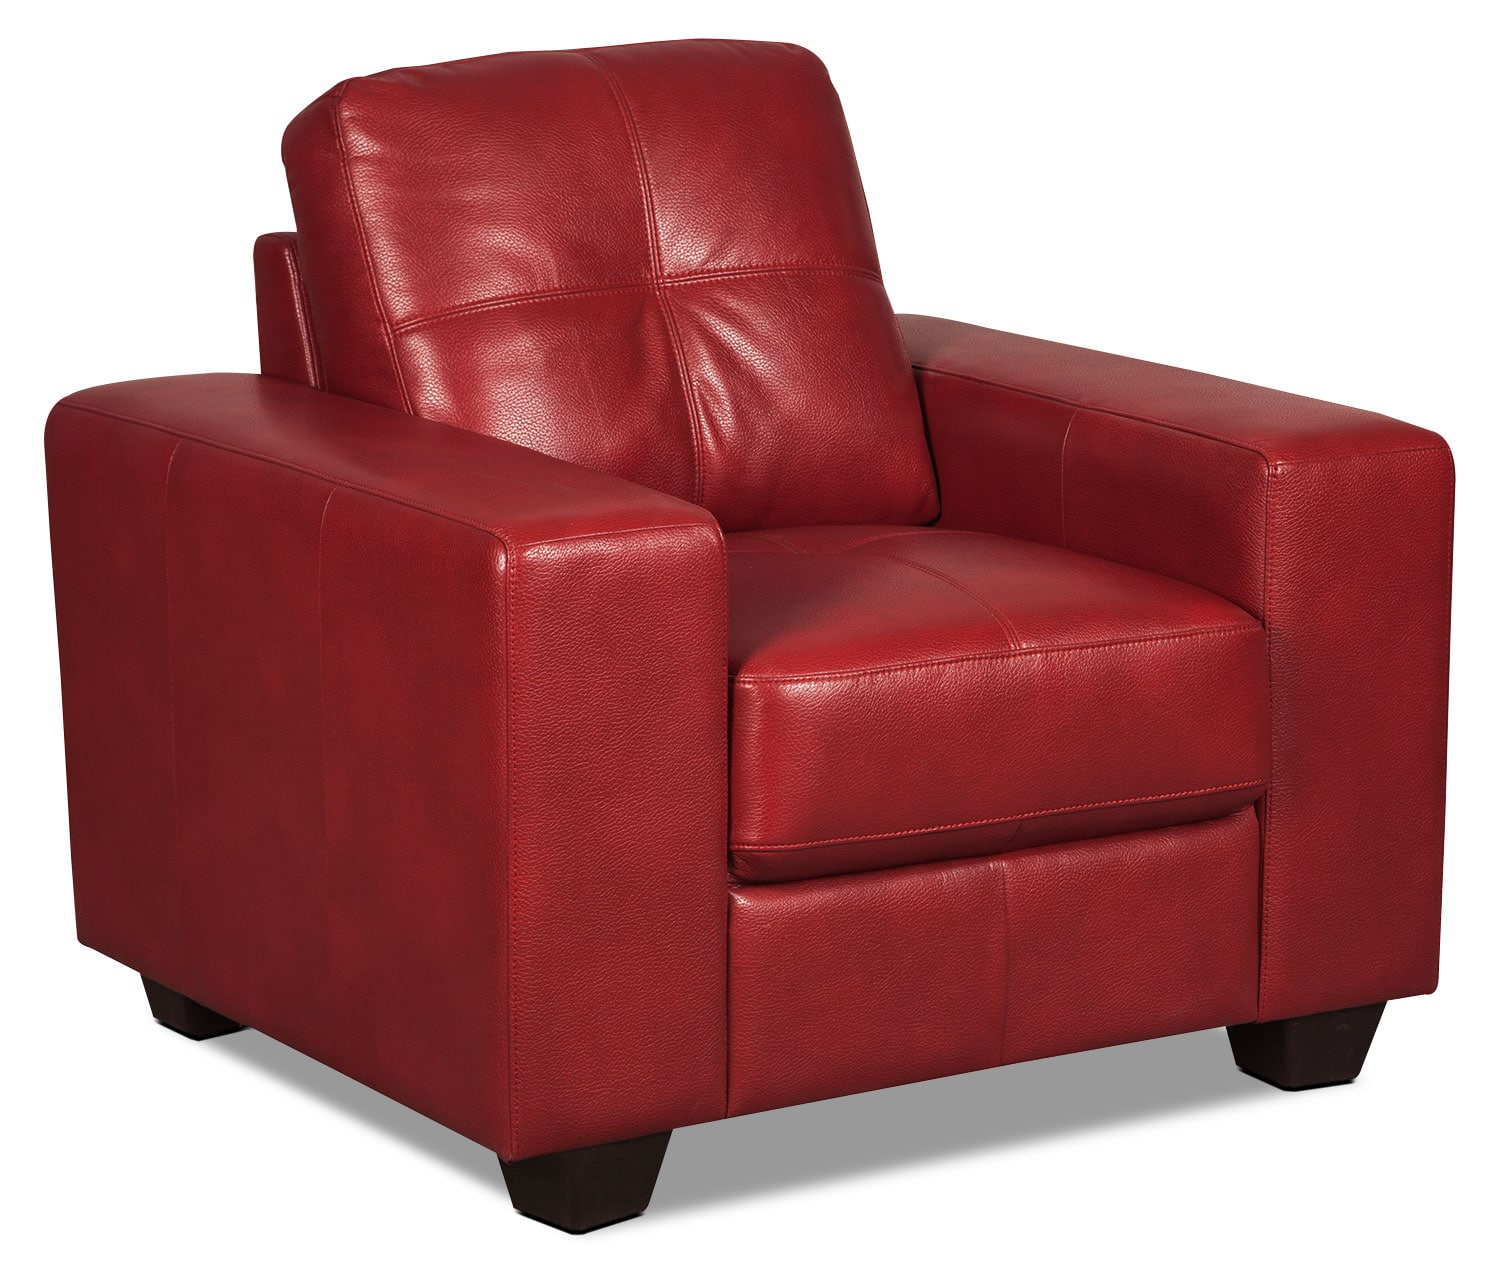 Costa Leather-Look Fabric Chair – Red